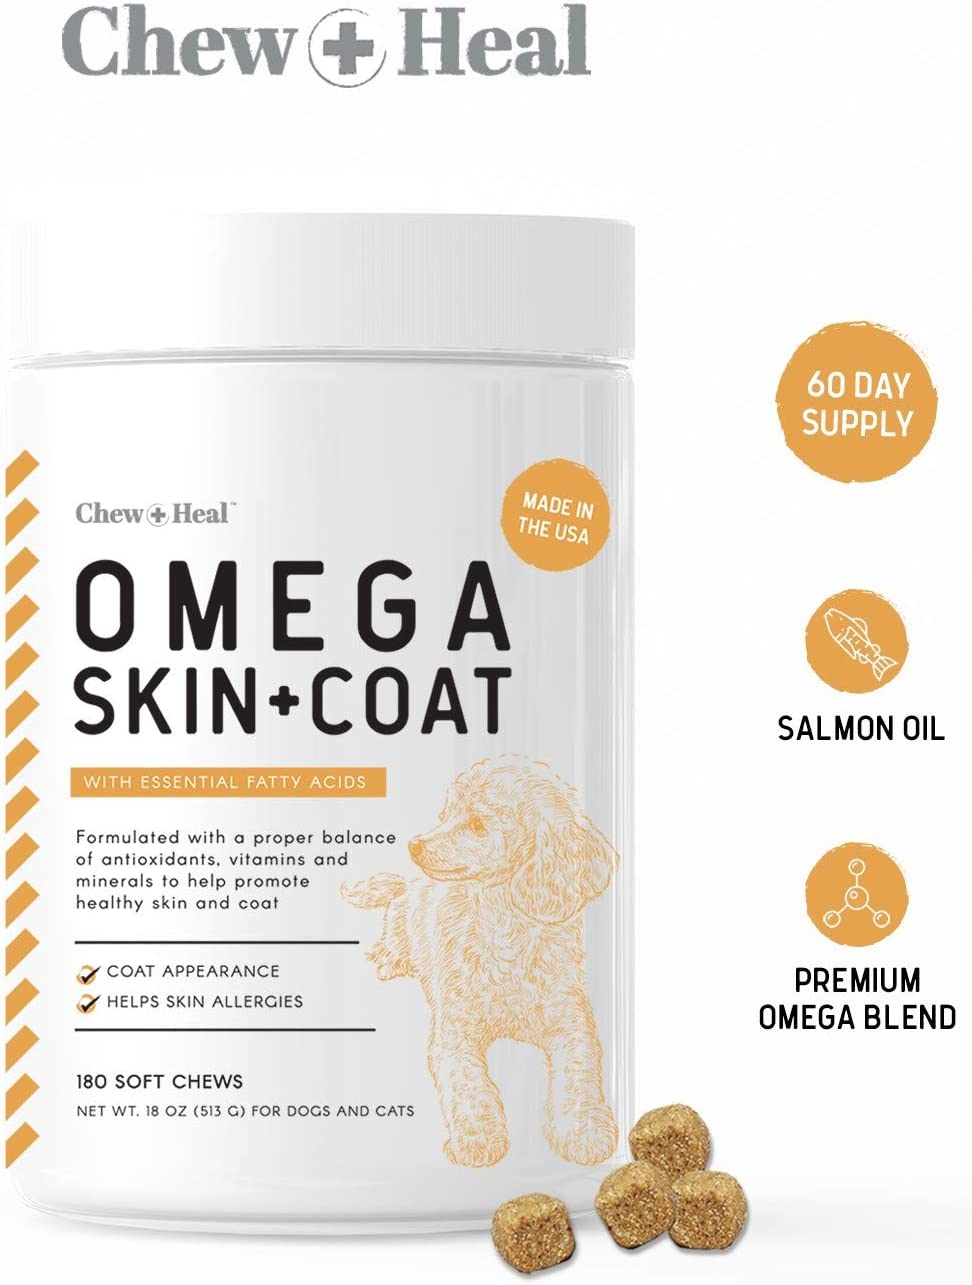 Chew Heal Omega Skin and Coat Supplement – 180 Soft Chews – Salmon Fish Oil for Dogs – Blend of Essential Fatty Acids, Omega 3 and 6, Vitamins, Antioxidants and Minerals – 60 Day Supply